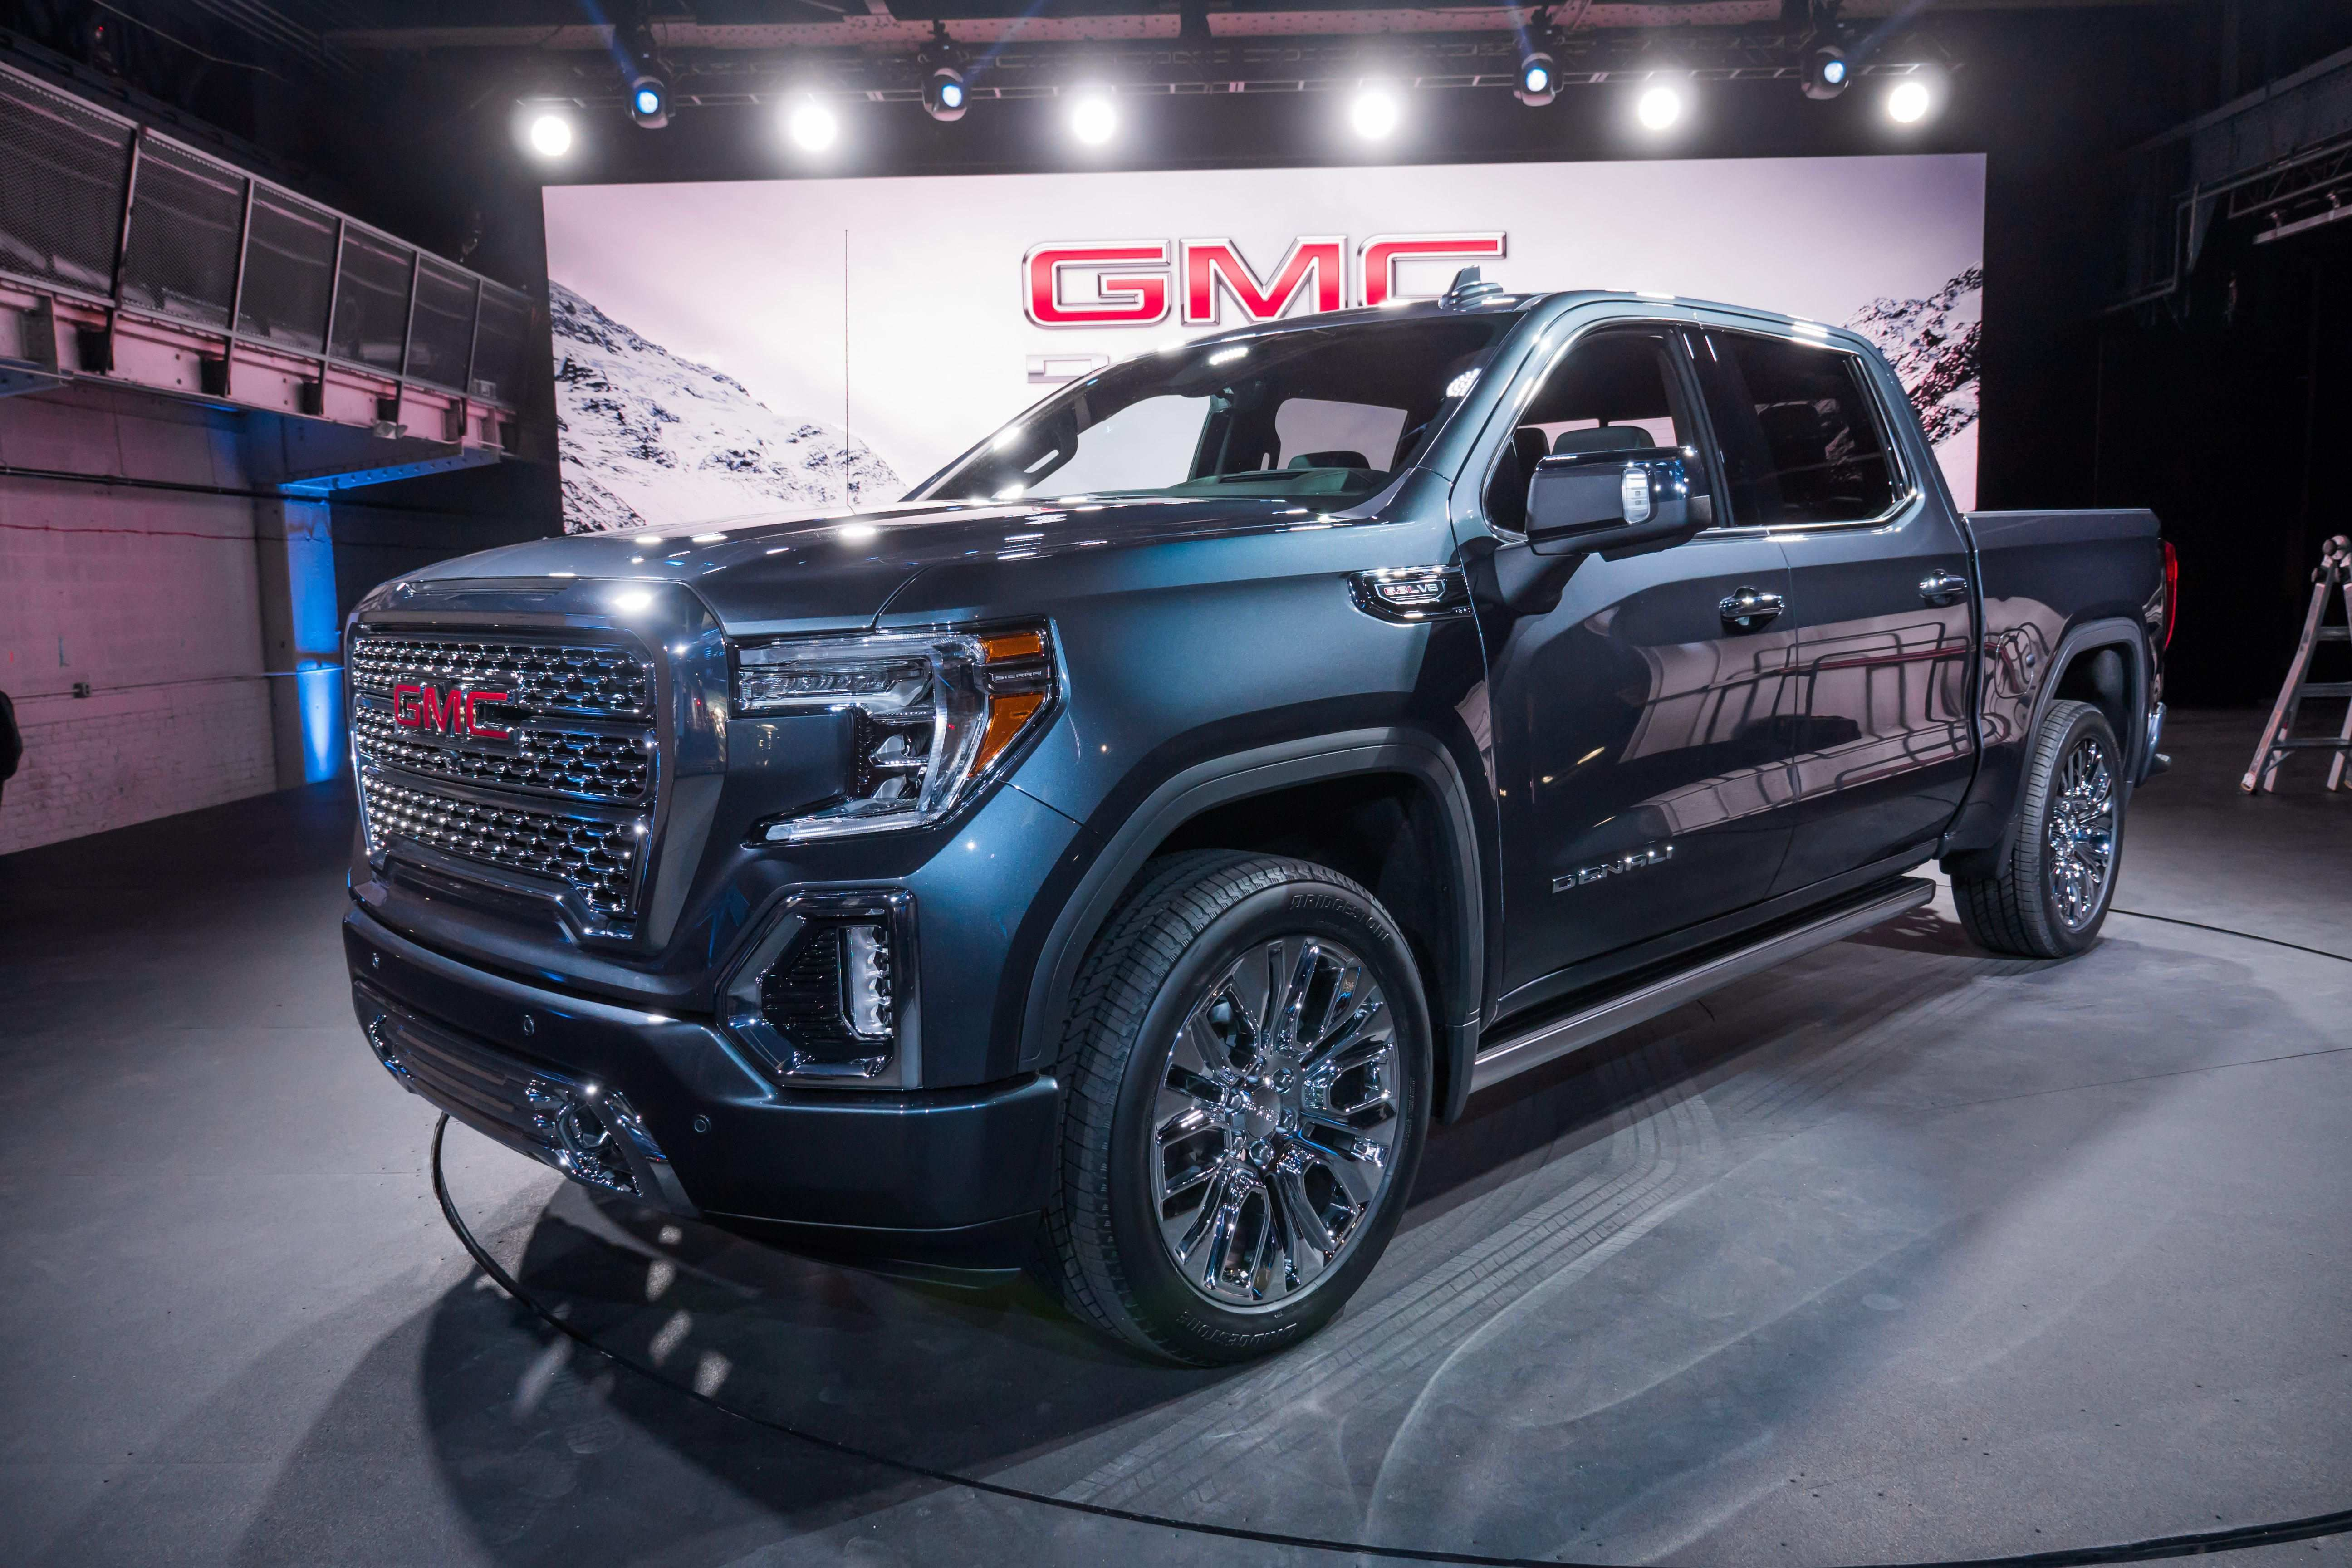 59 All New The Gmc 2019 Video Review And Price Prices by The Gmc 2019 Video Review And Price